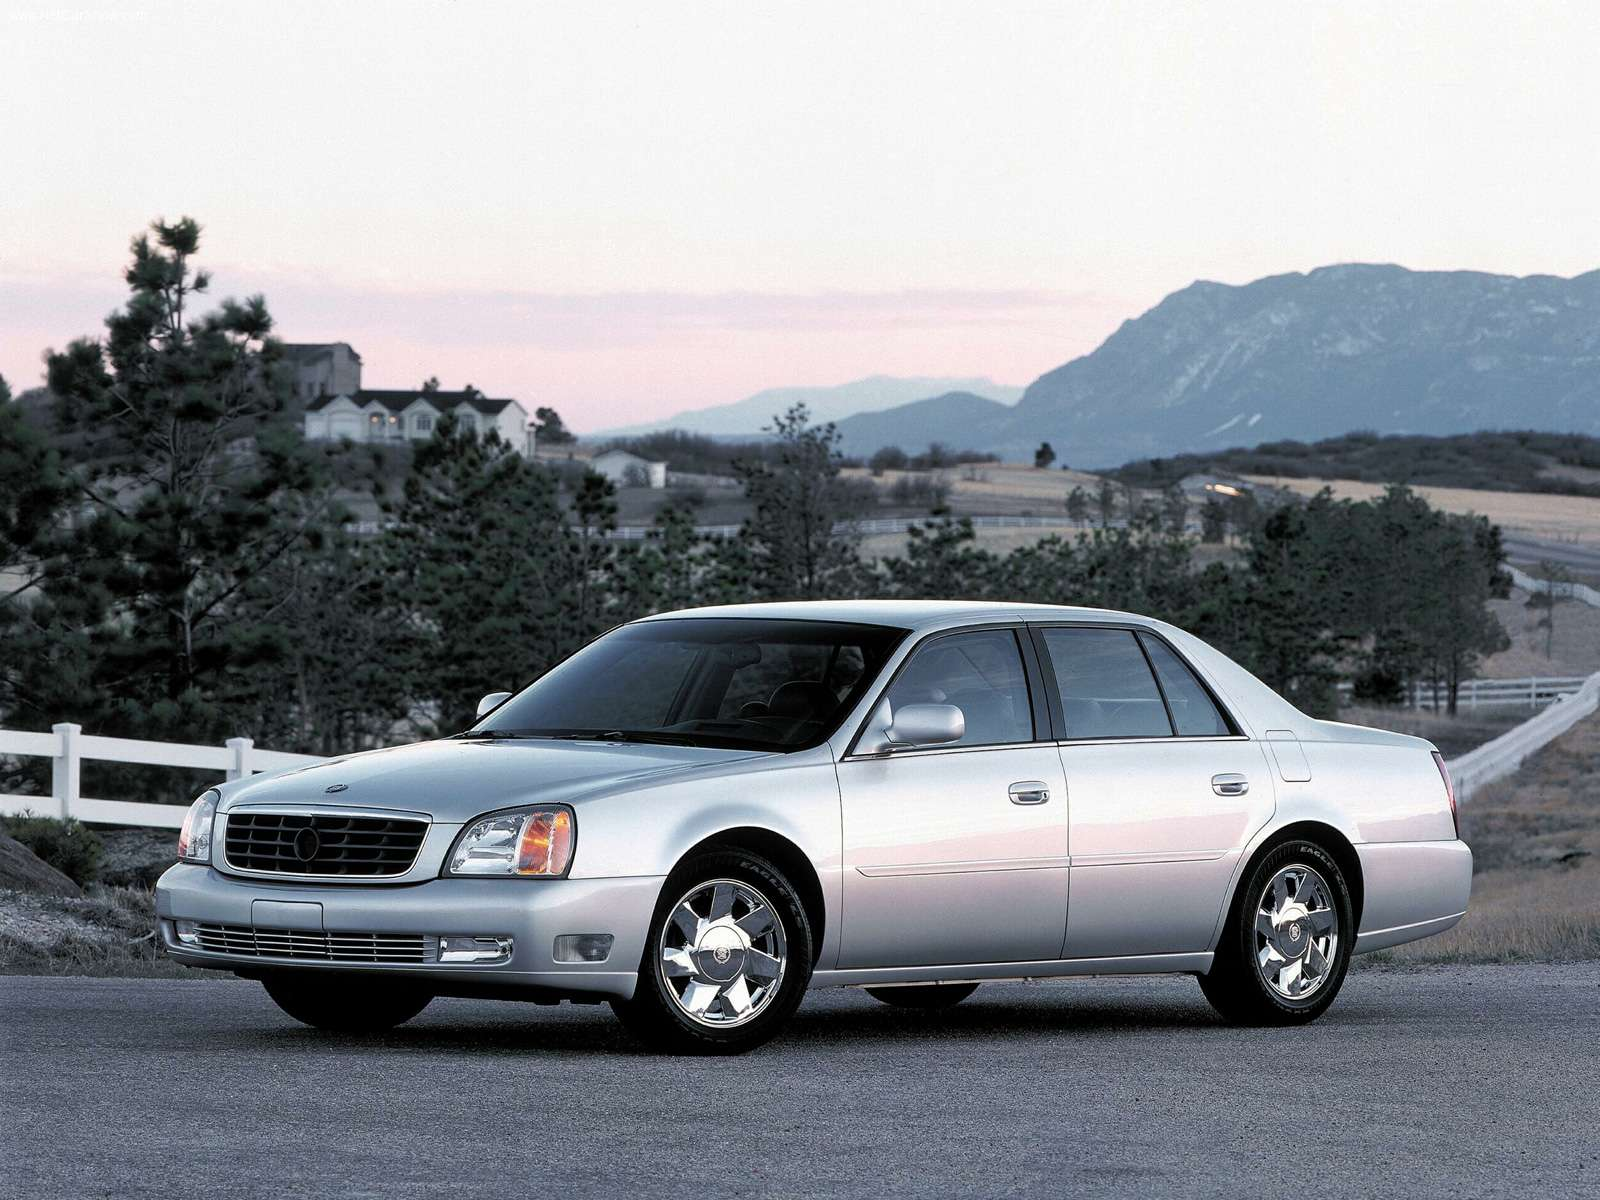 Sport Cars: Cadillac Deville DTS 2001